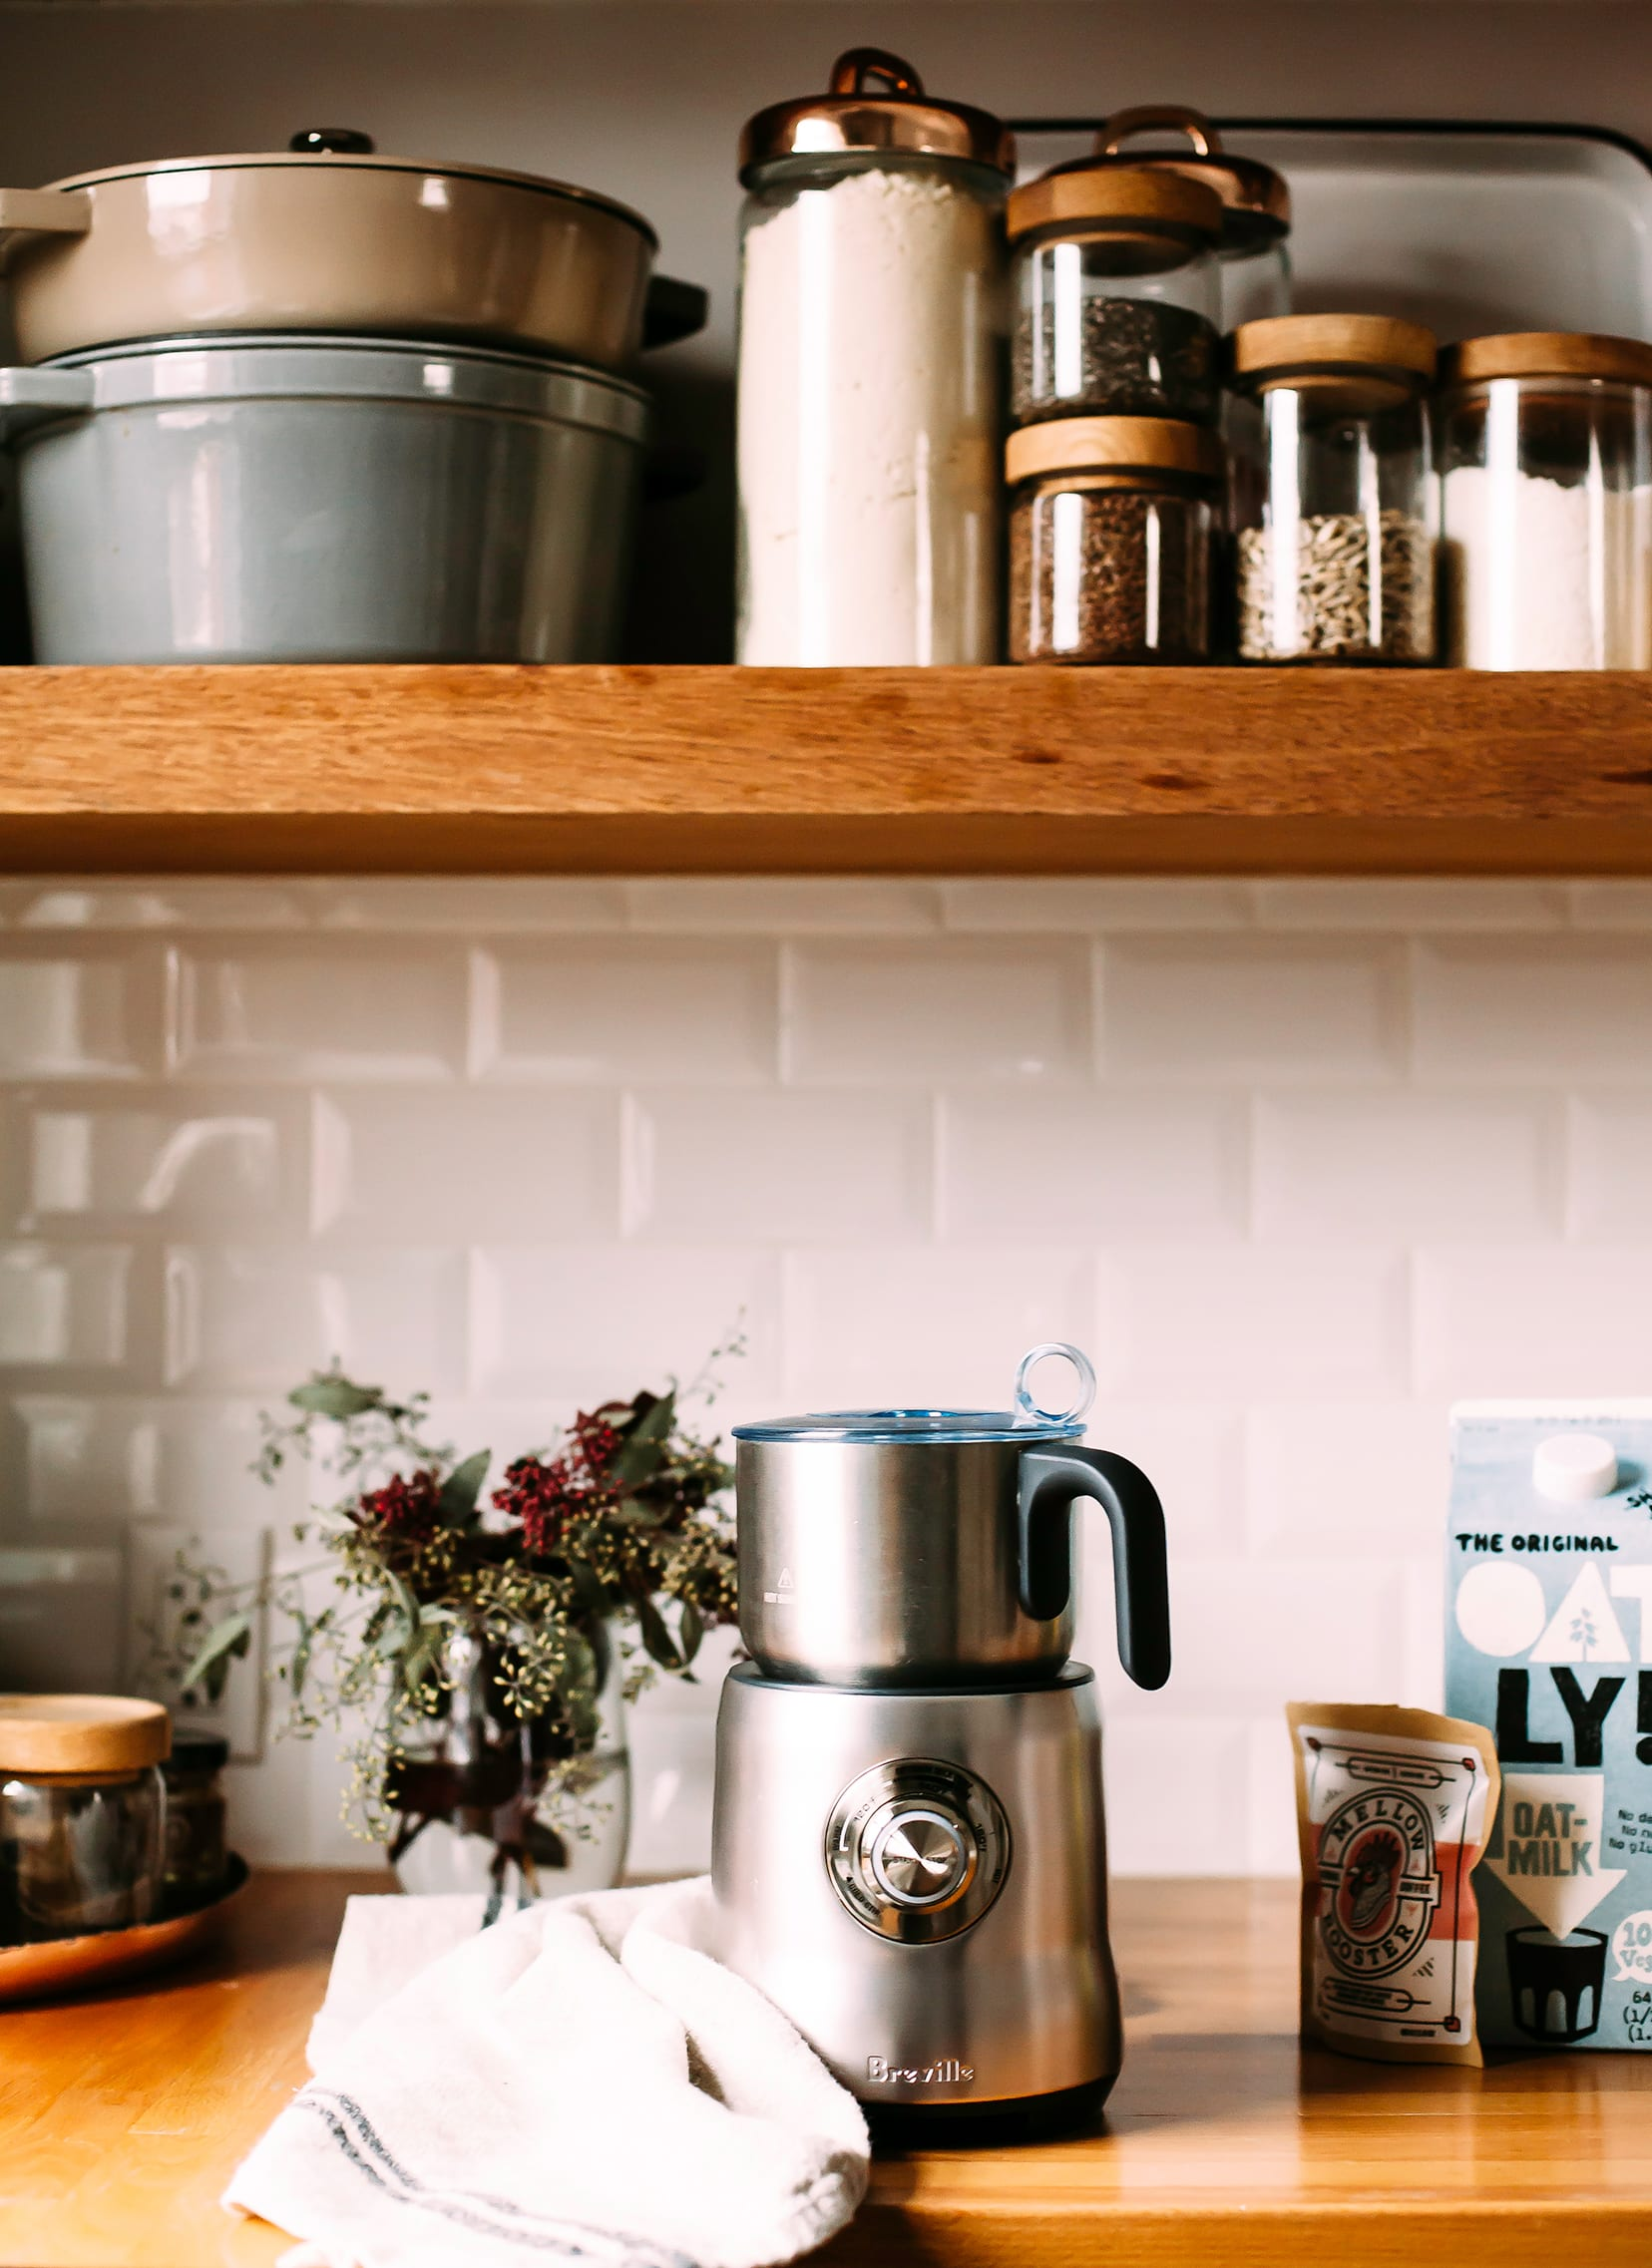 Image shows a kitchen counter scene with a milk frothier, a carton of oat milk, some eucalyptus branches in a jar, and open shelving against some white subway tile.